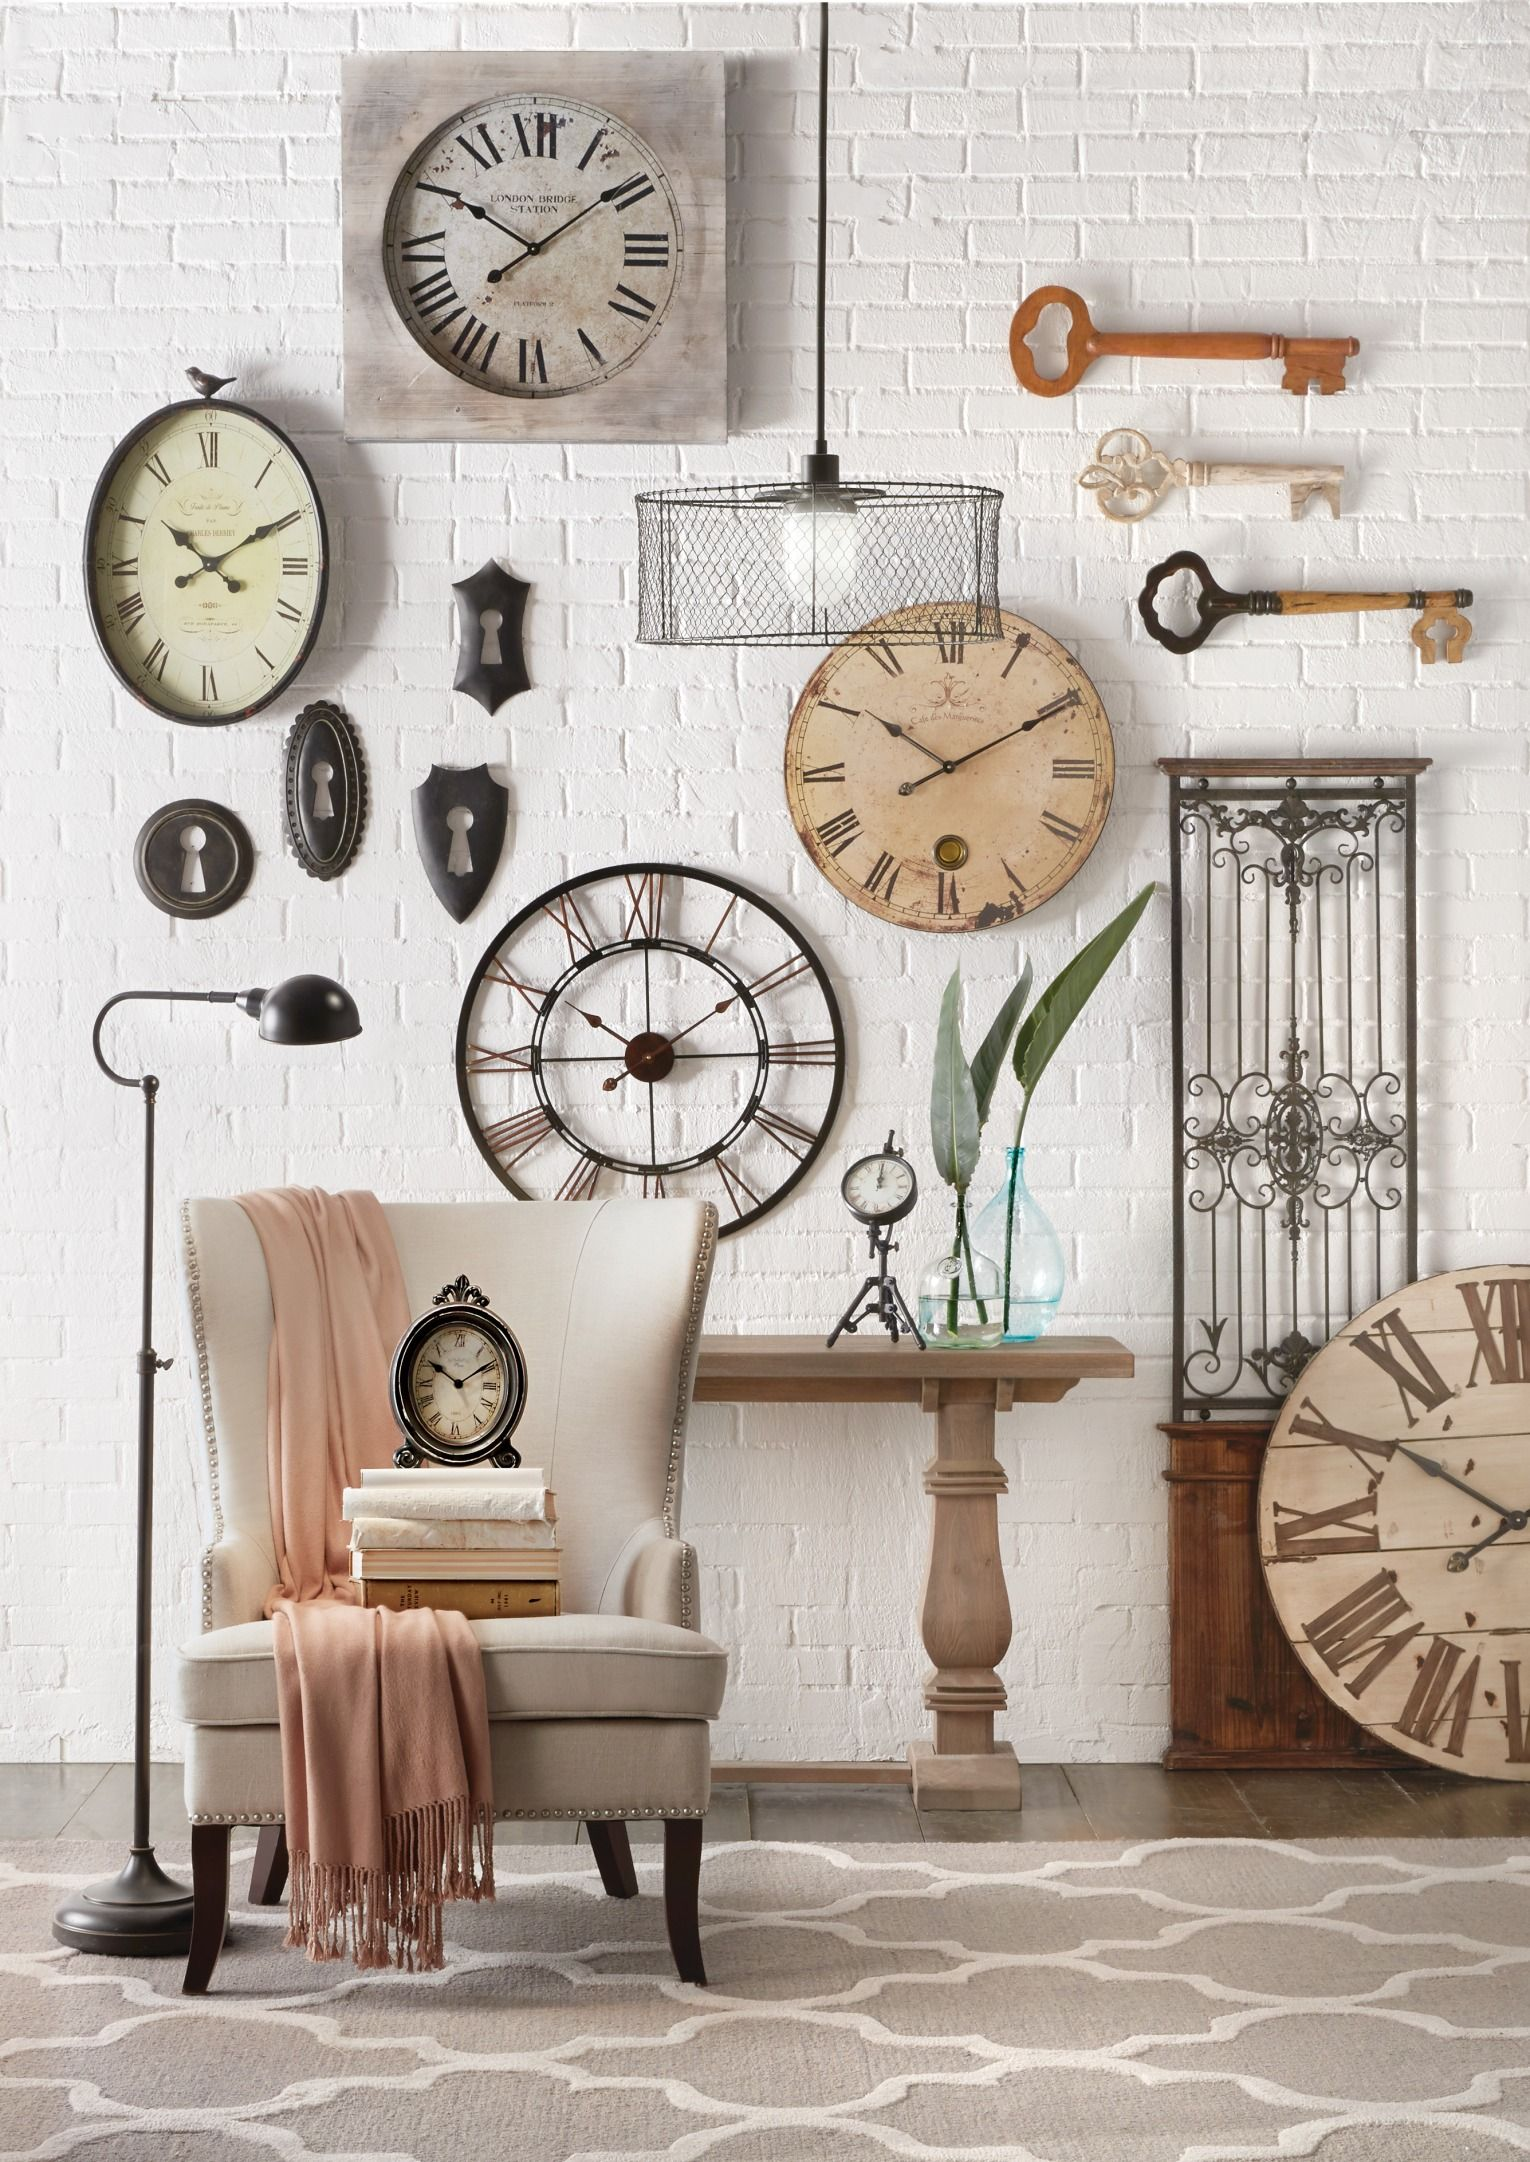 Wall Art Clocks Tick Tock It 39s Time For A New Clock Whether It 39s One Or